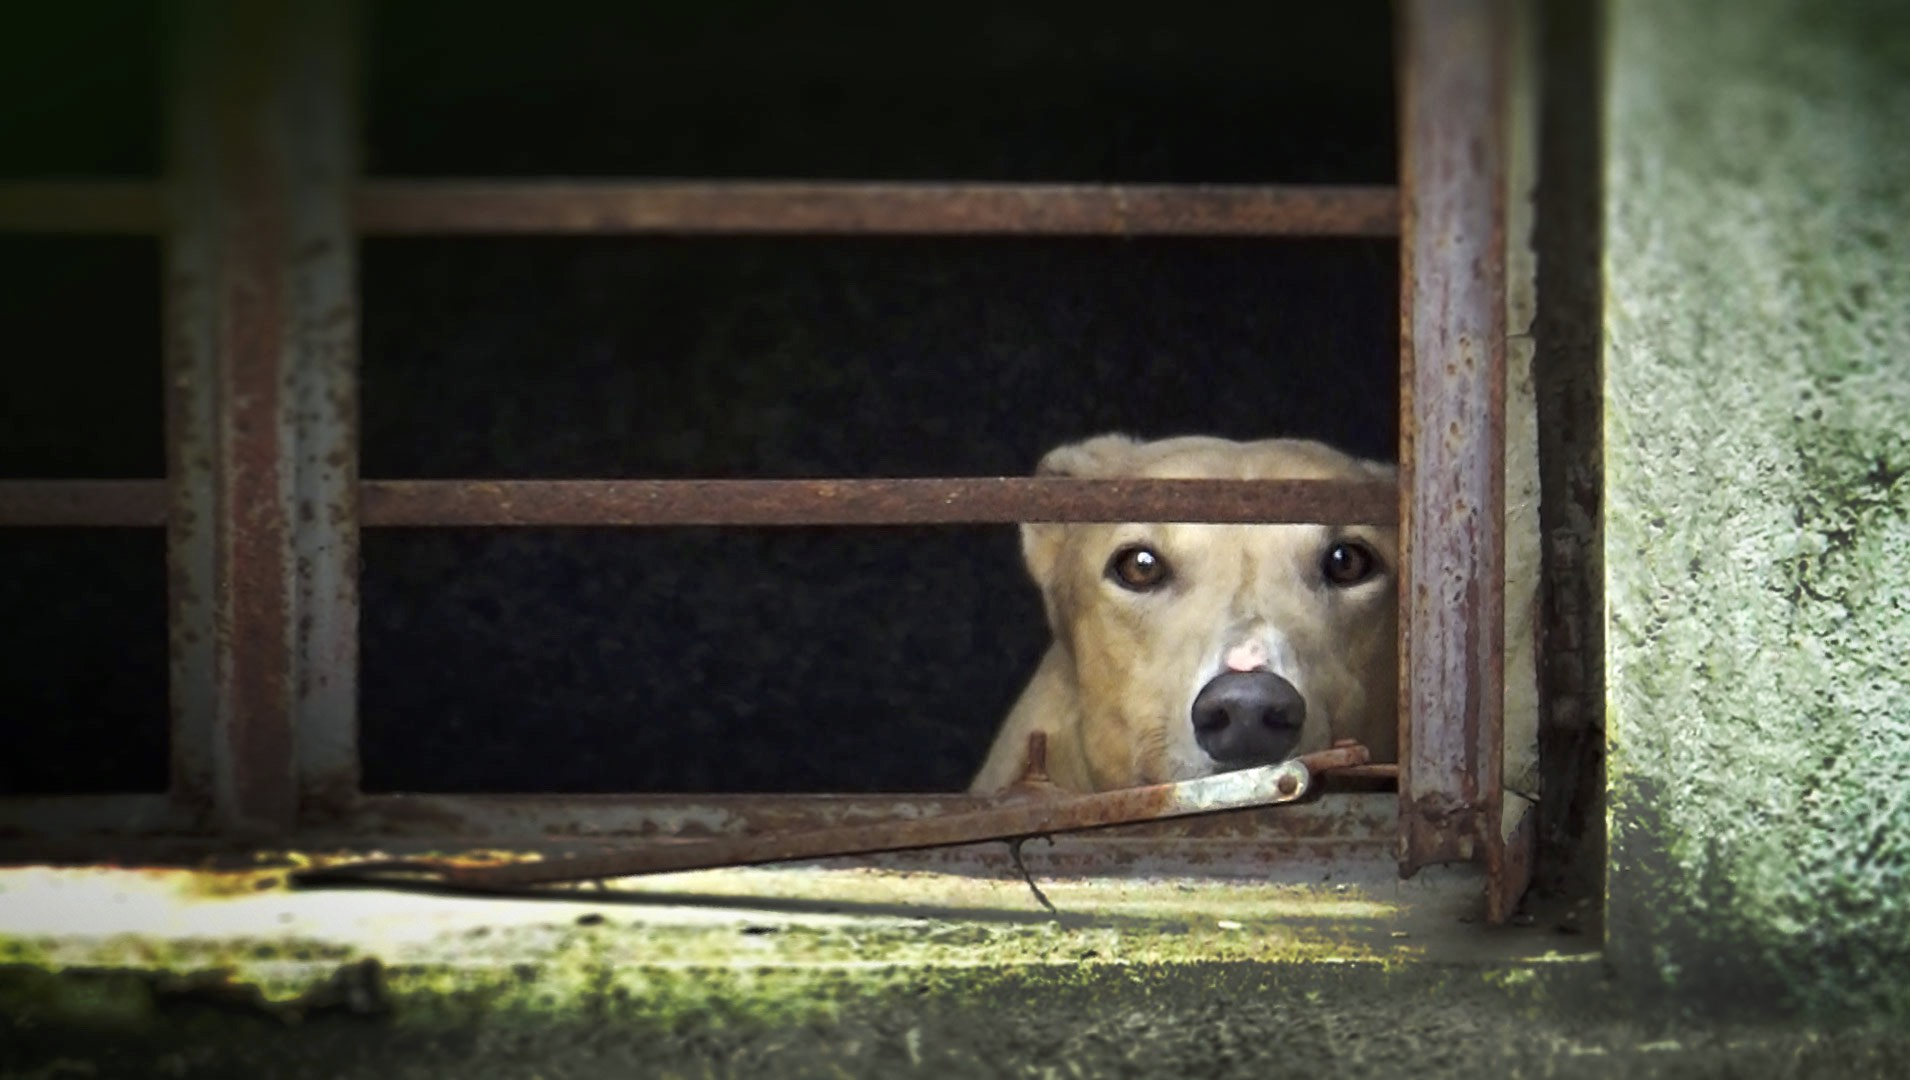 Macau: Greyhound Racing And Dog Meat